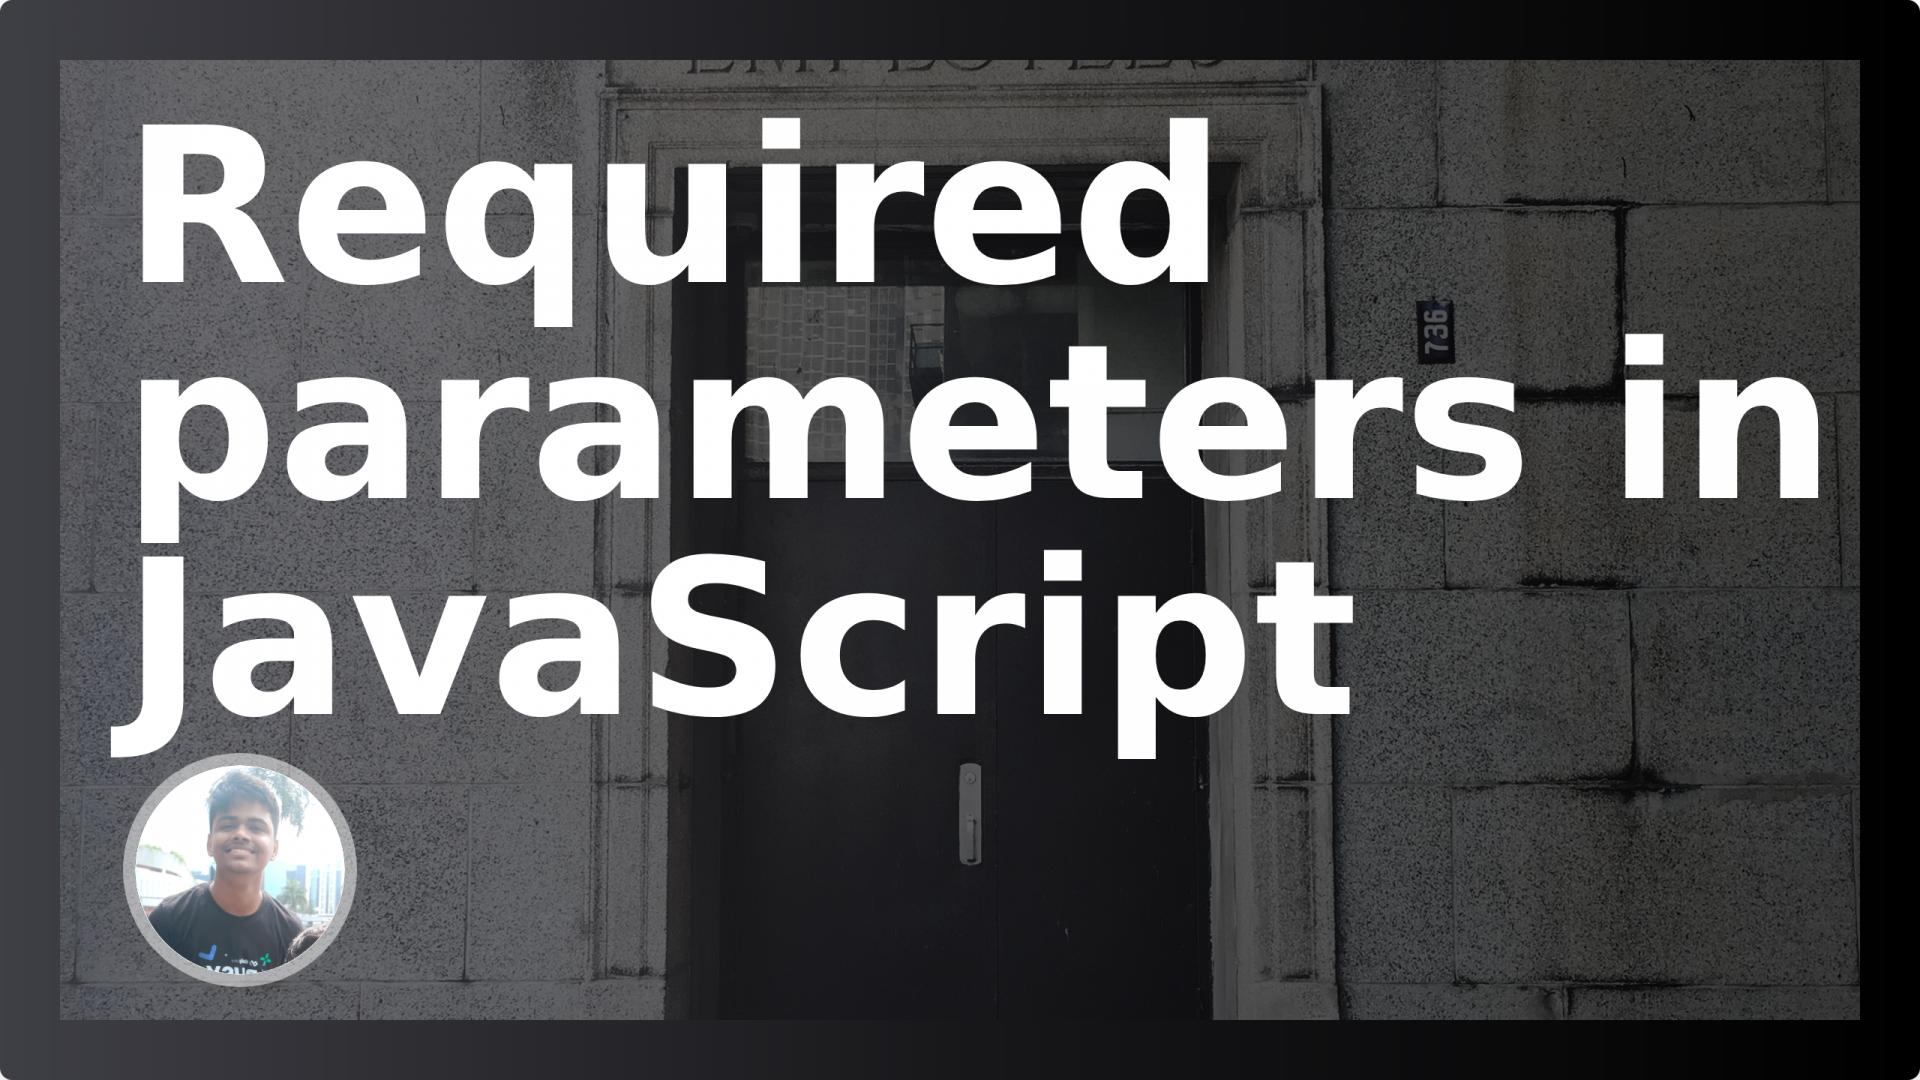 A short post on Required parameters in JavaScript